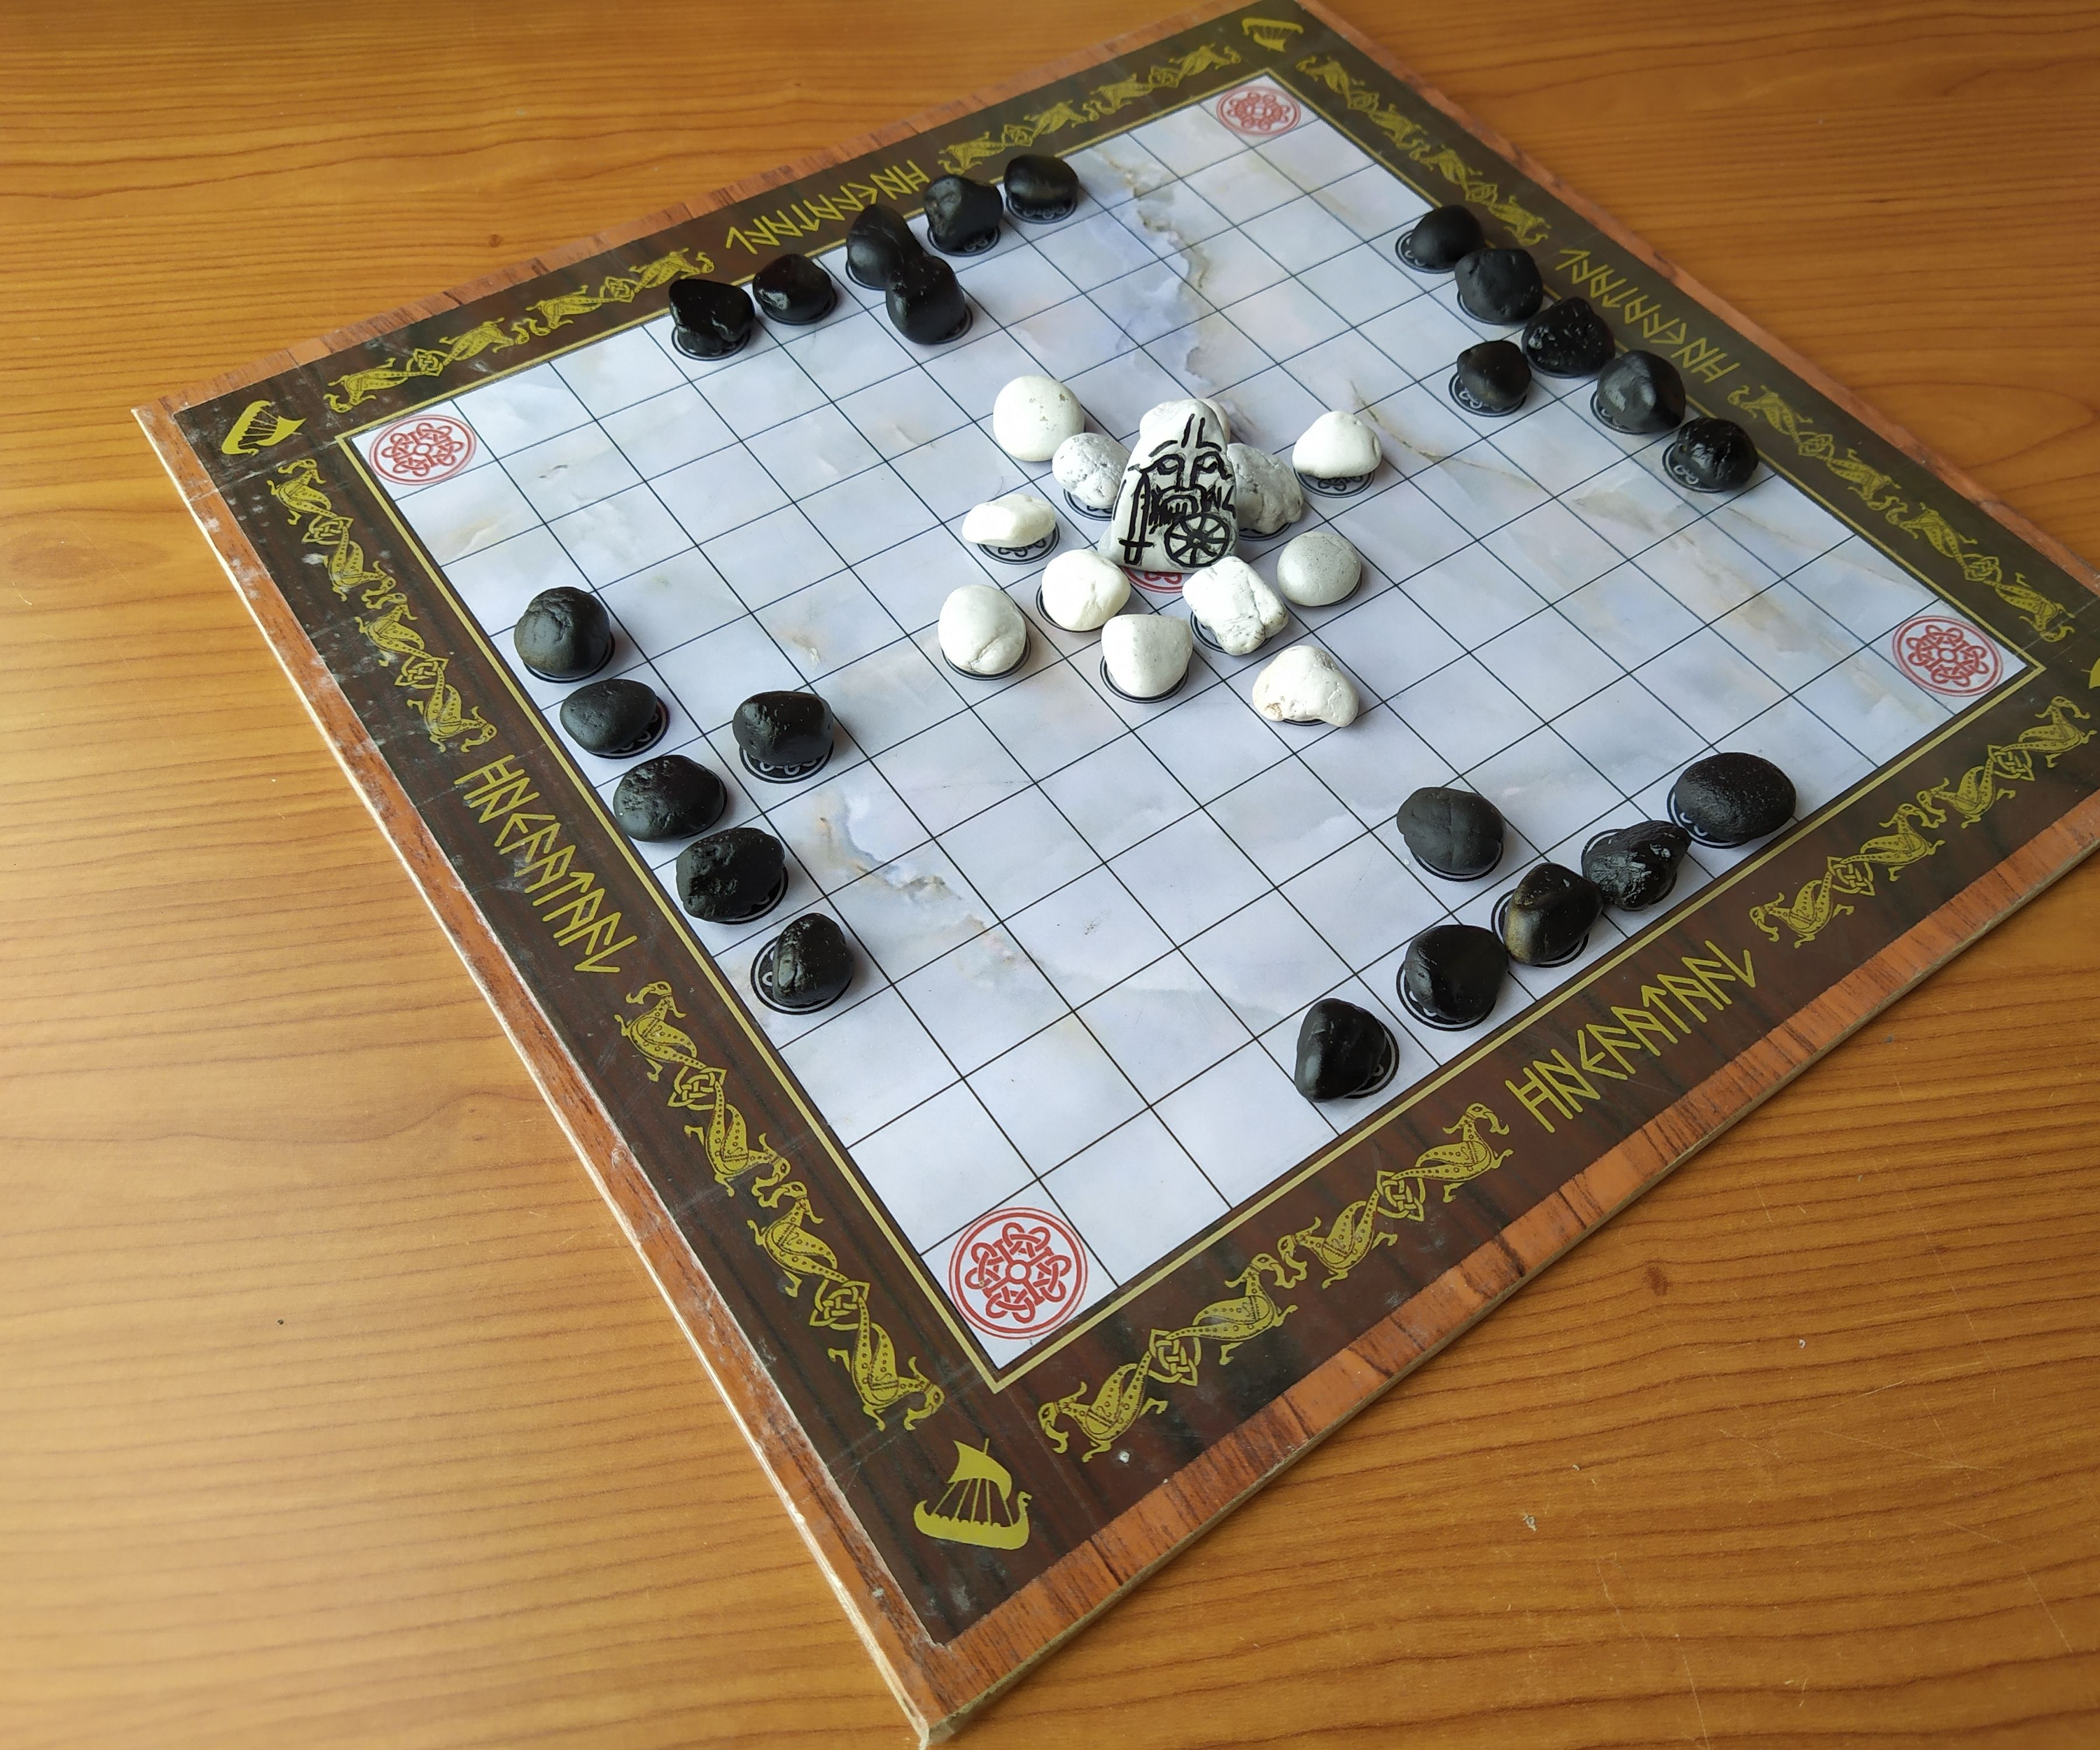 (Probably) the Cheapest Hnefatafl Gameboard in the World